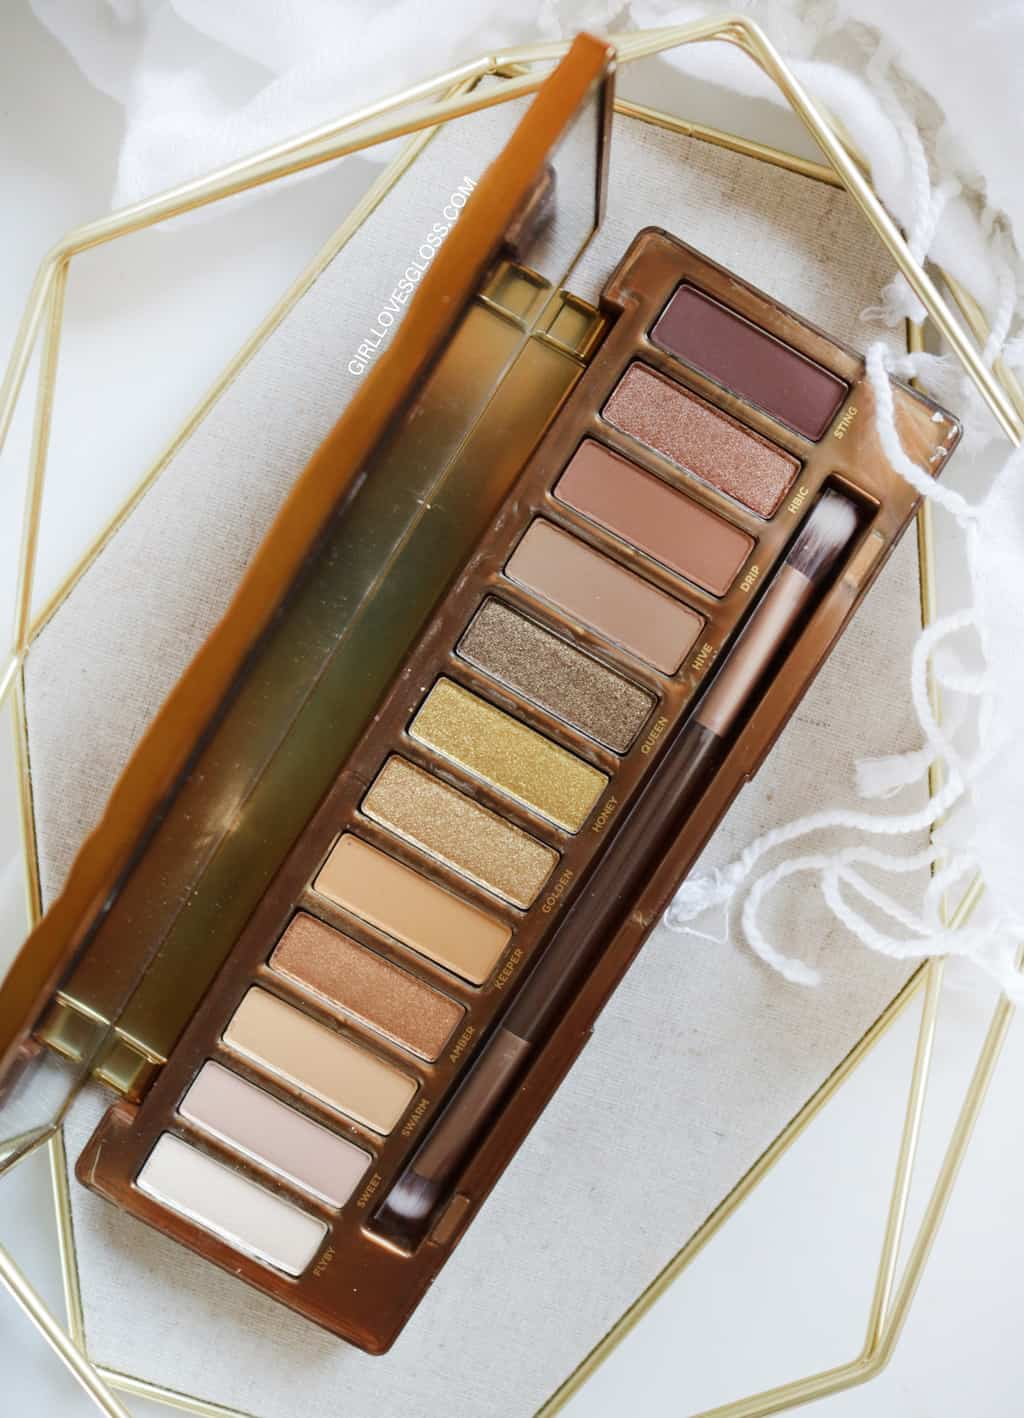 Urban Decays new Naked Honey eyeshadow pallet is about to